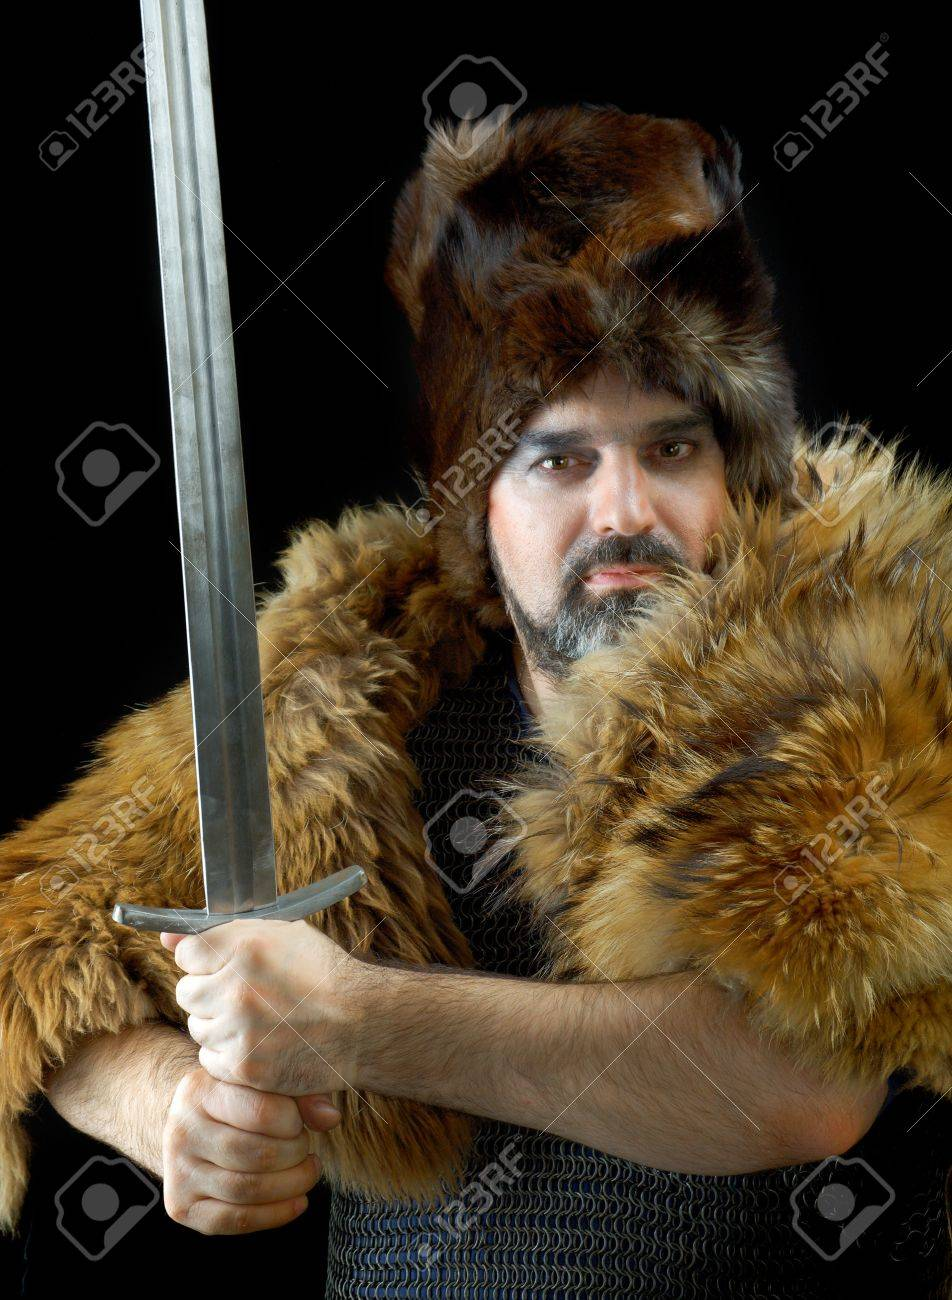 Cimmerian.barbarian  Warrior.Medieval knight in the armor with the sword. Stock Photo - 13842869